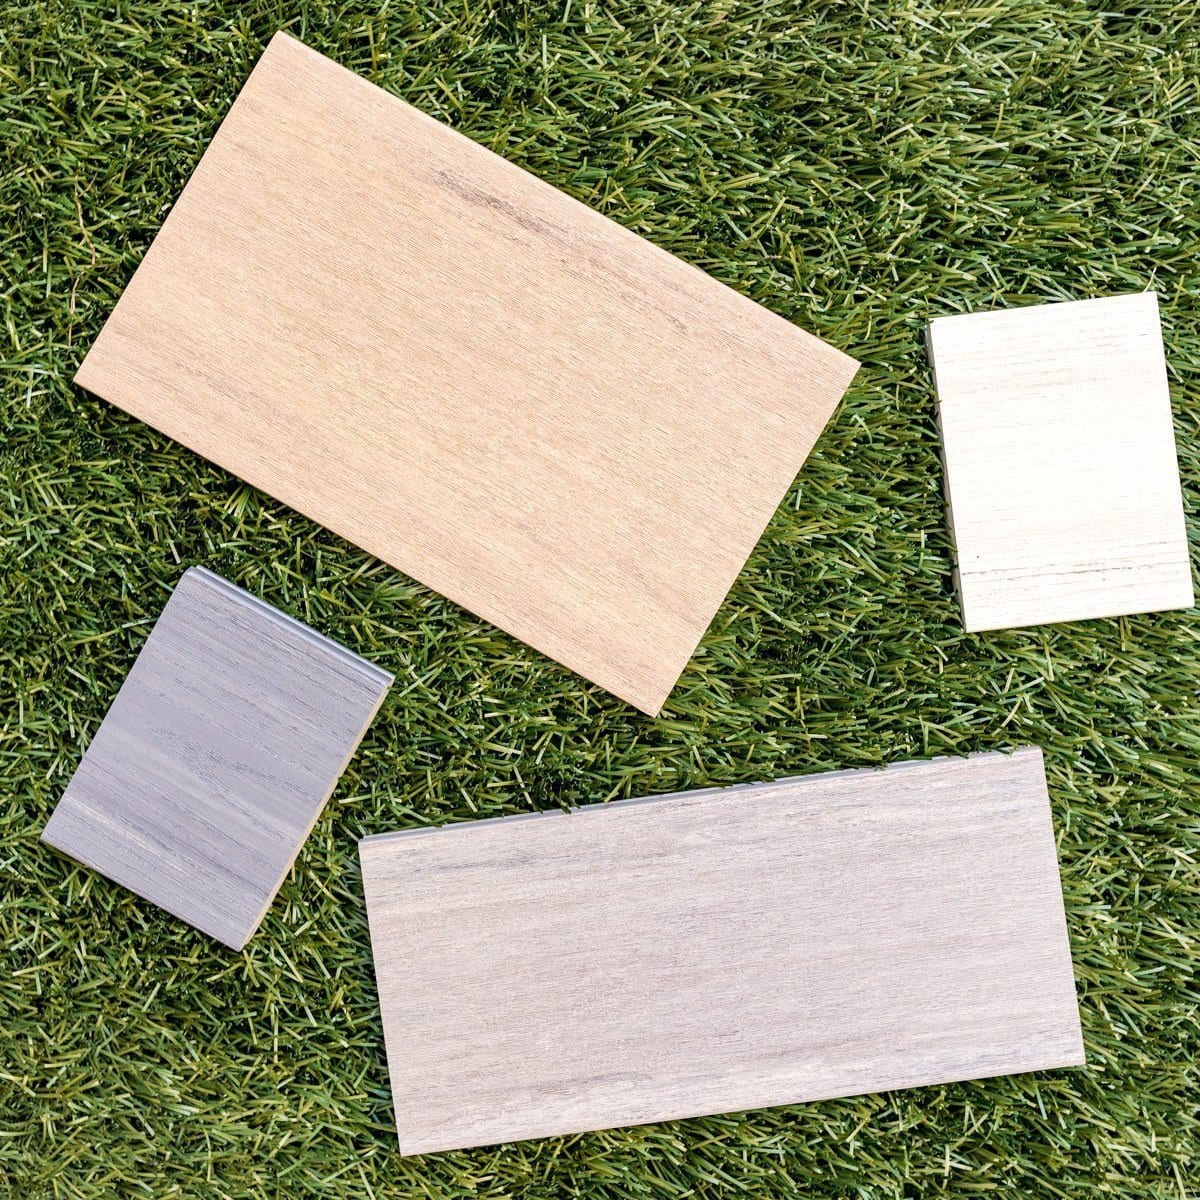 timbertech decking samples in varying widths and colors // tips for designing the perfect deck //  Never Skip Brunch by Cara Newhart